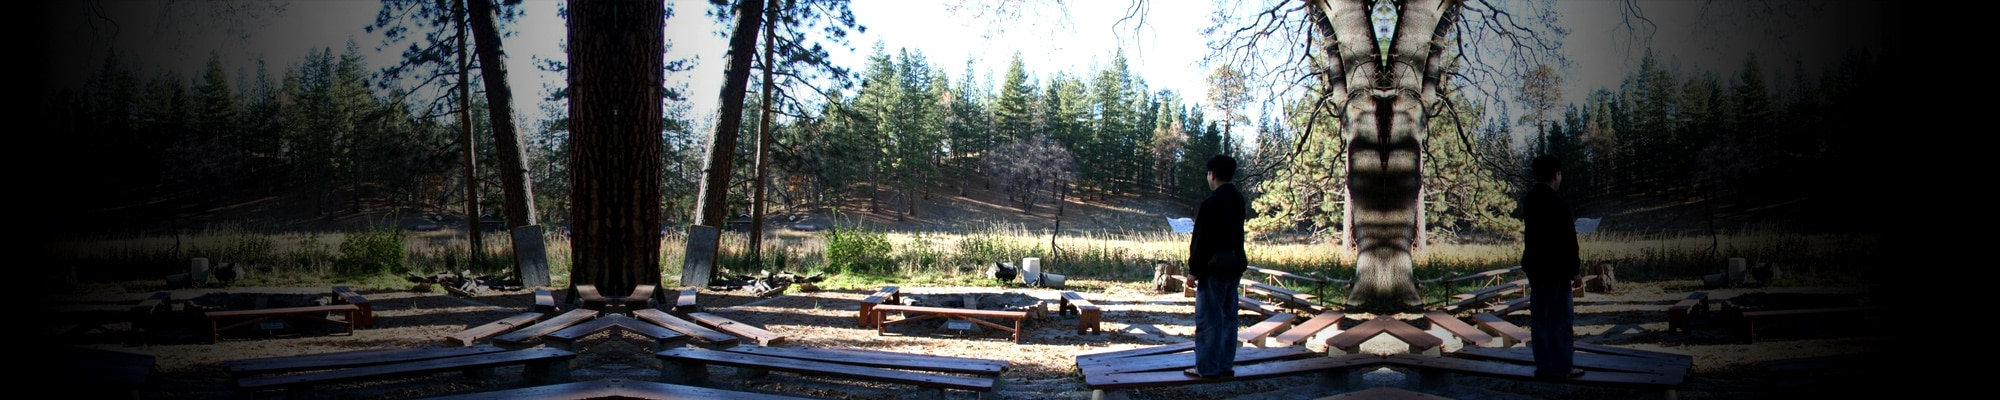 Camp Round Meadow